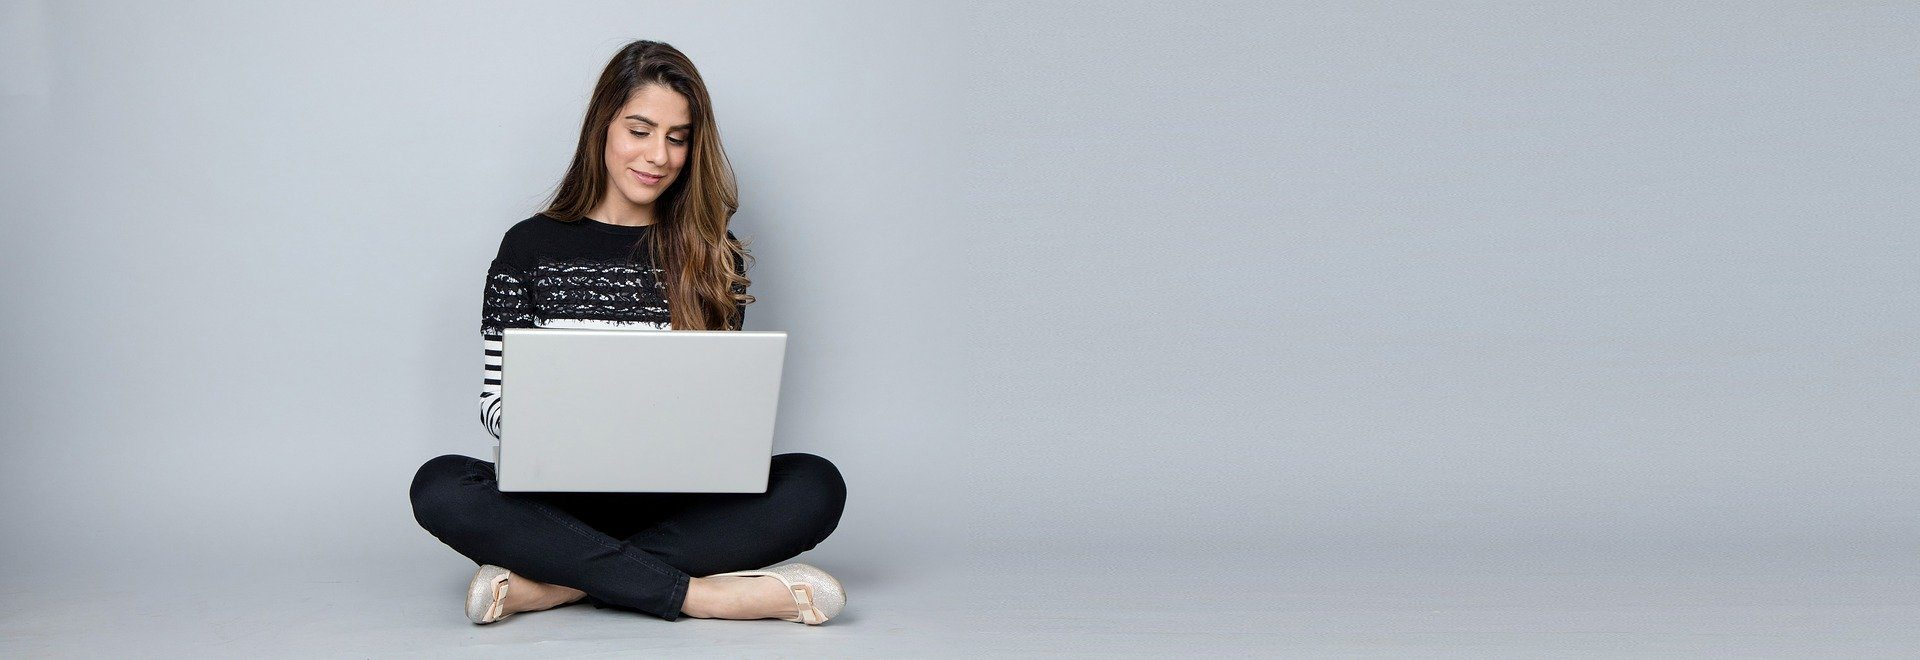 How To Blog As A Teenager Without Any Money?